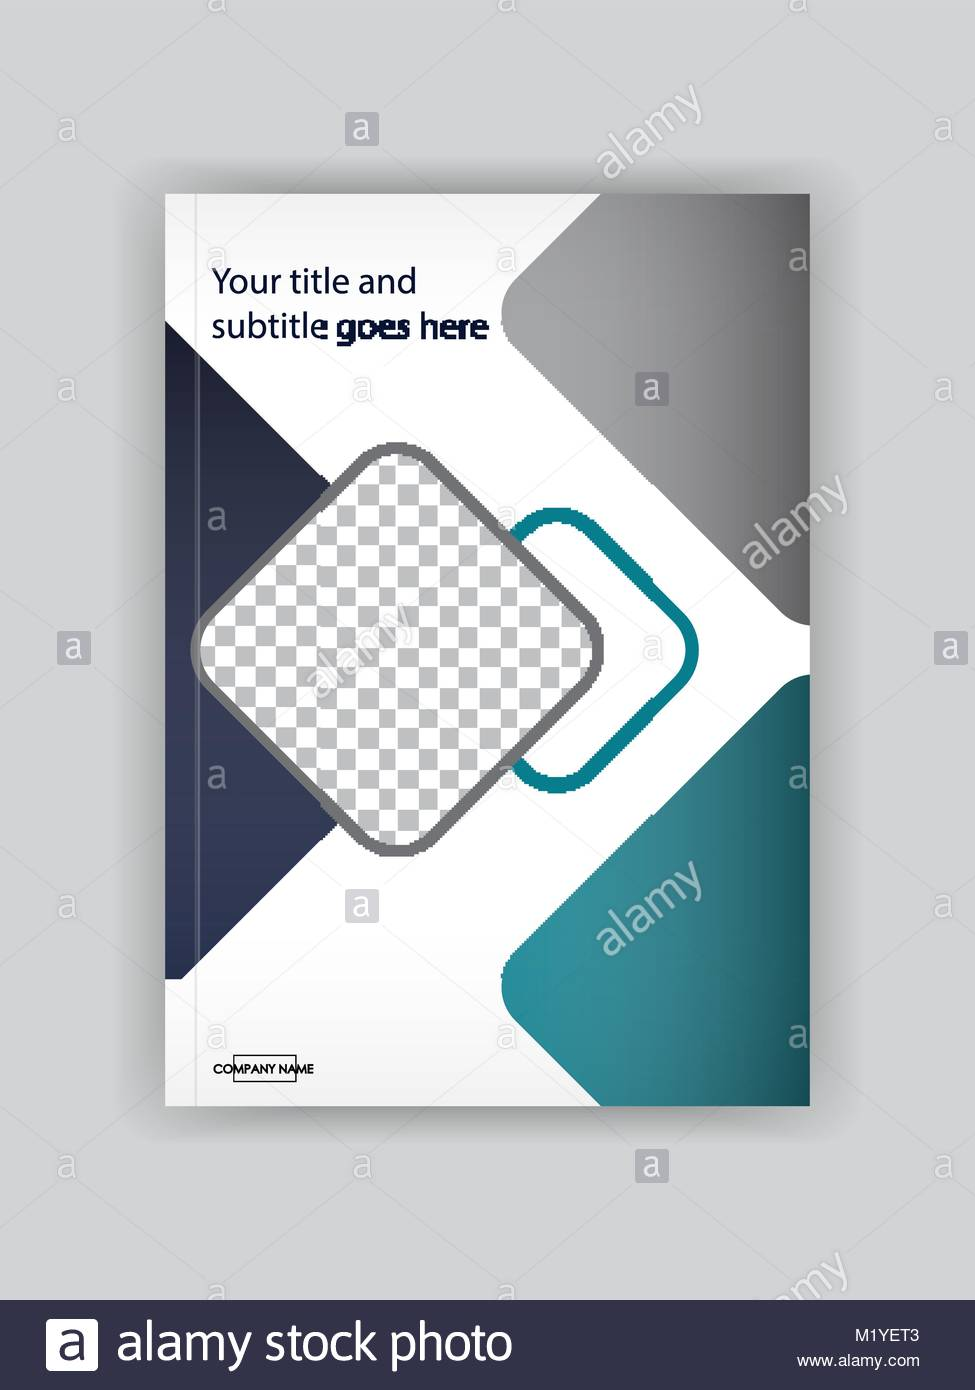 Business Book Cover Design Template : Business book cover design template good for portfolio